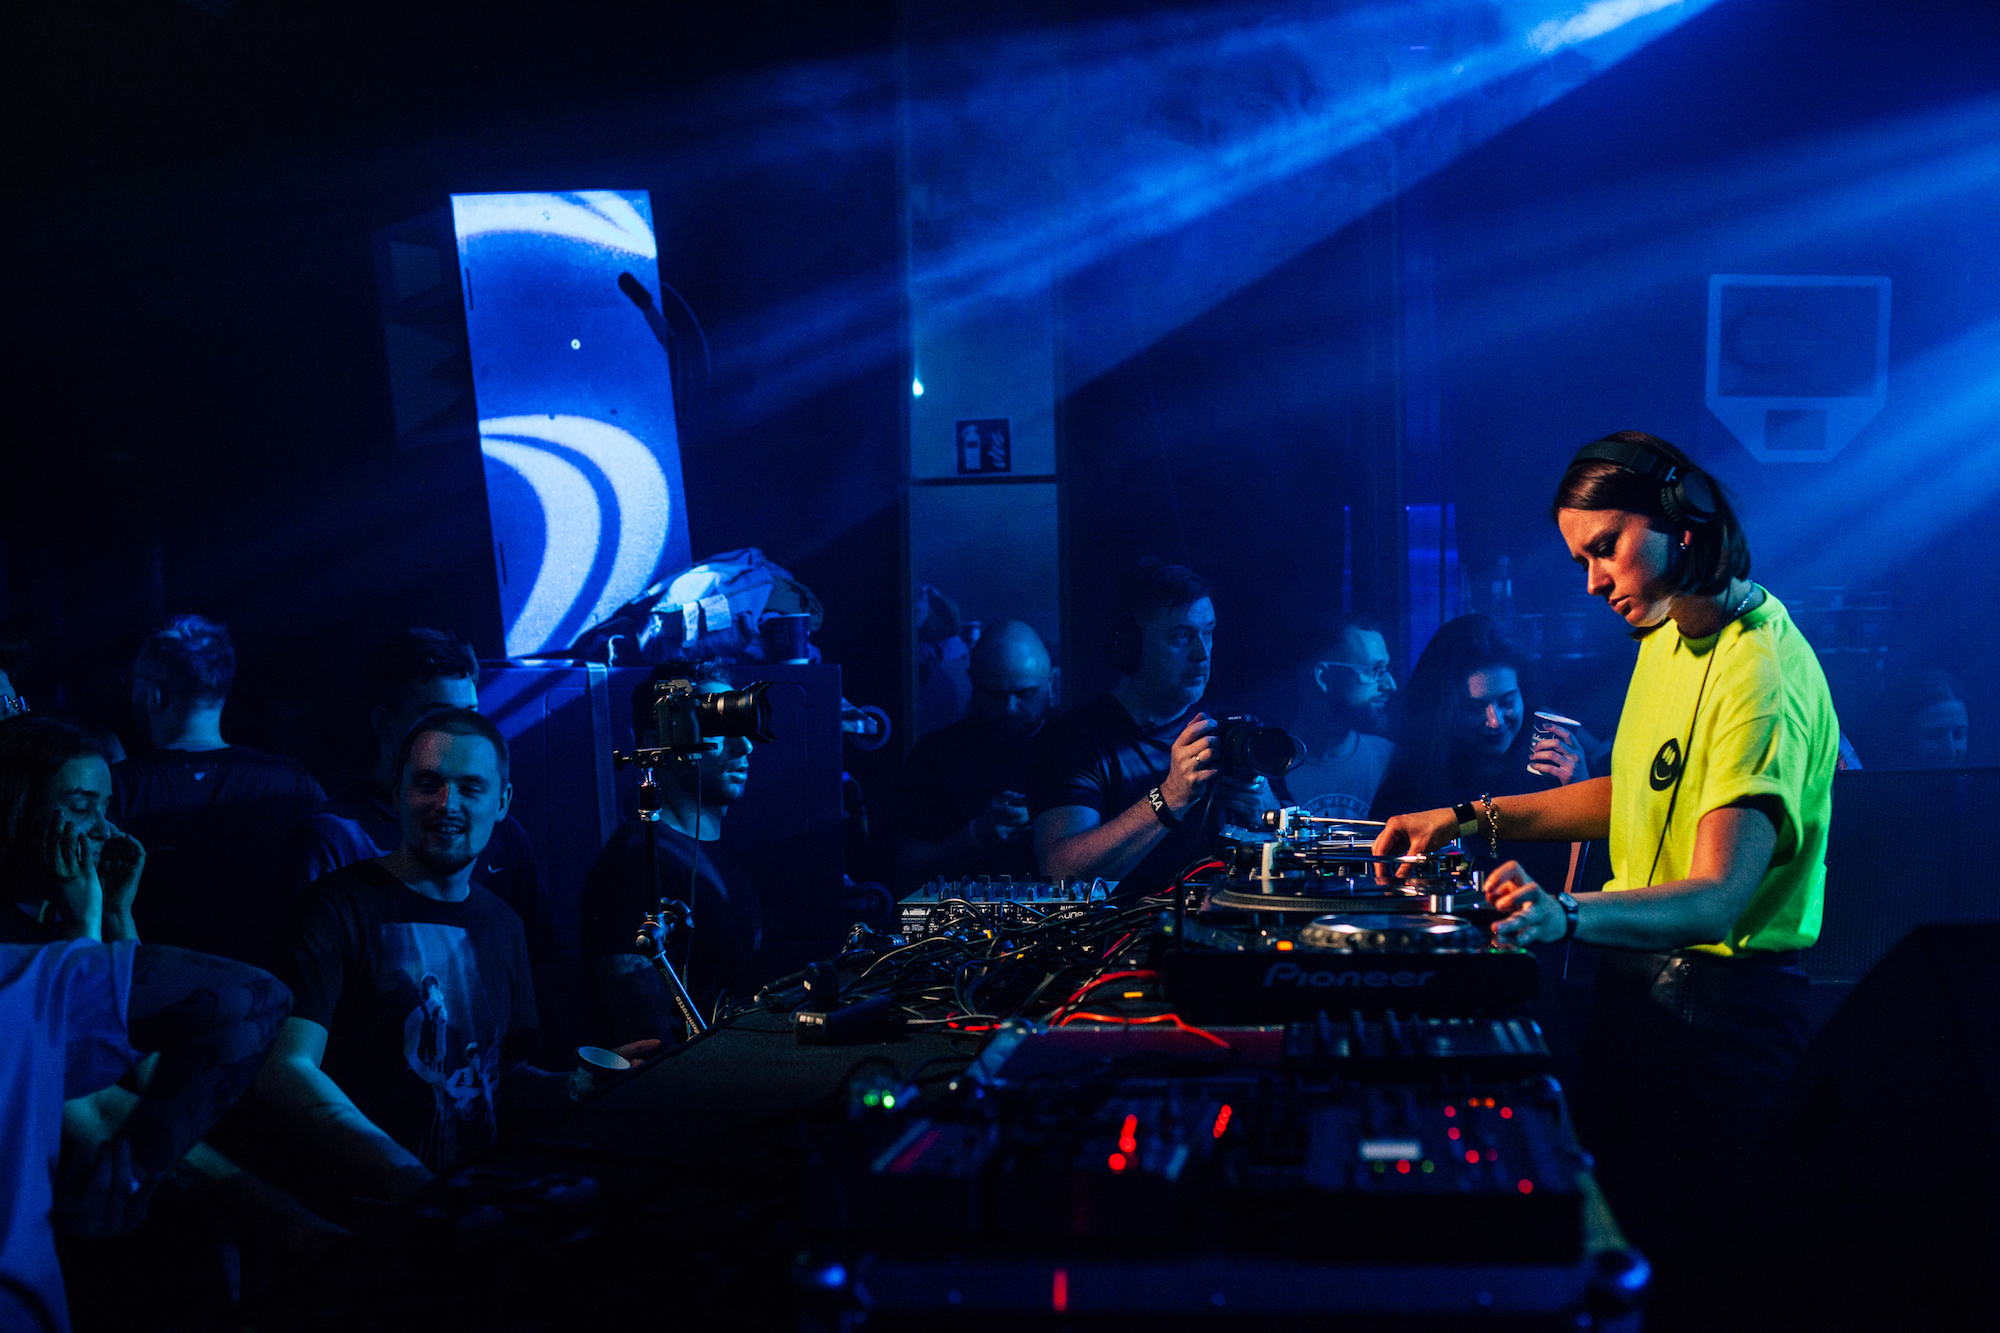 Ballantine's x Boiler Room in Krakow for True Music tour DJs side